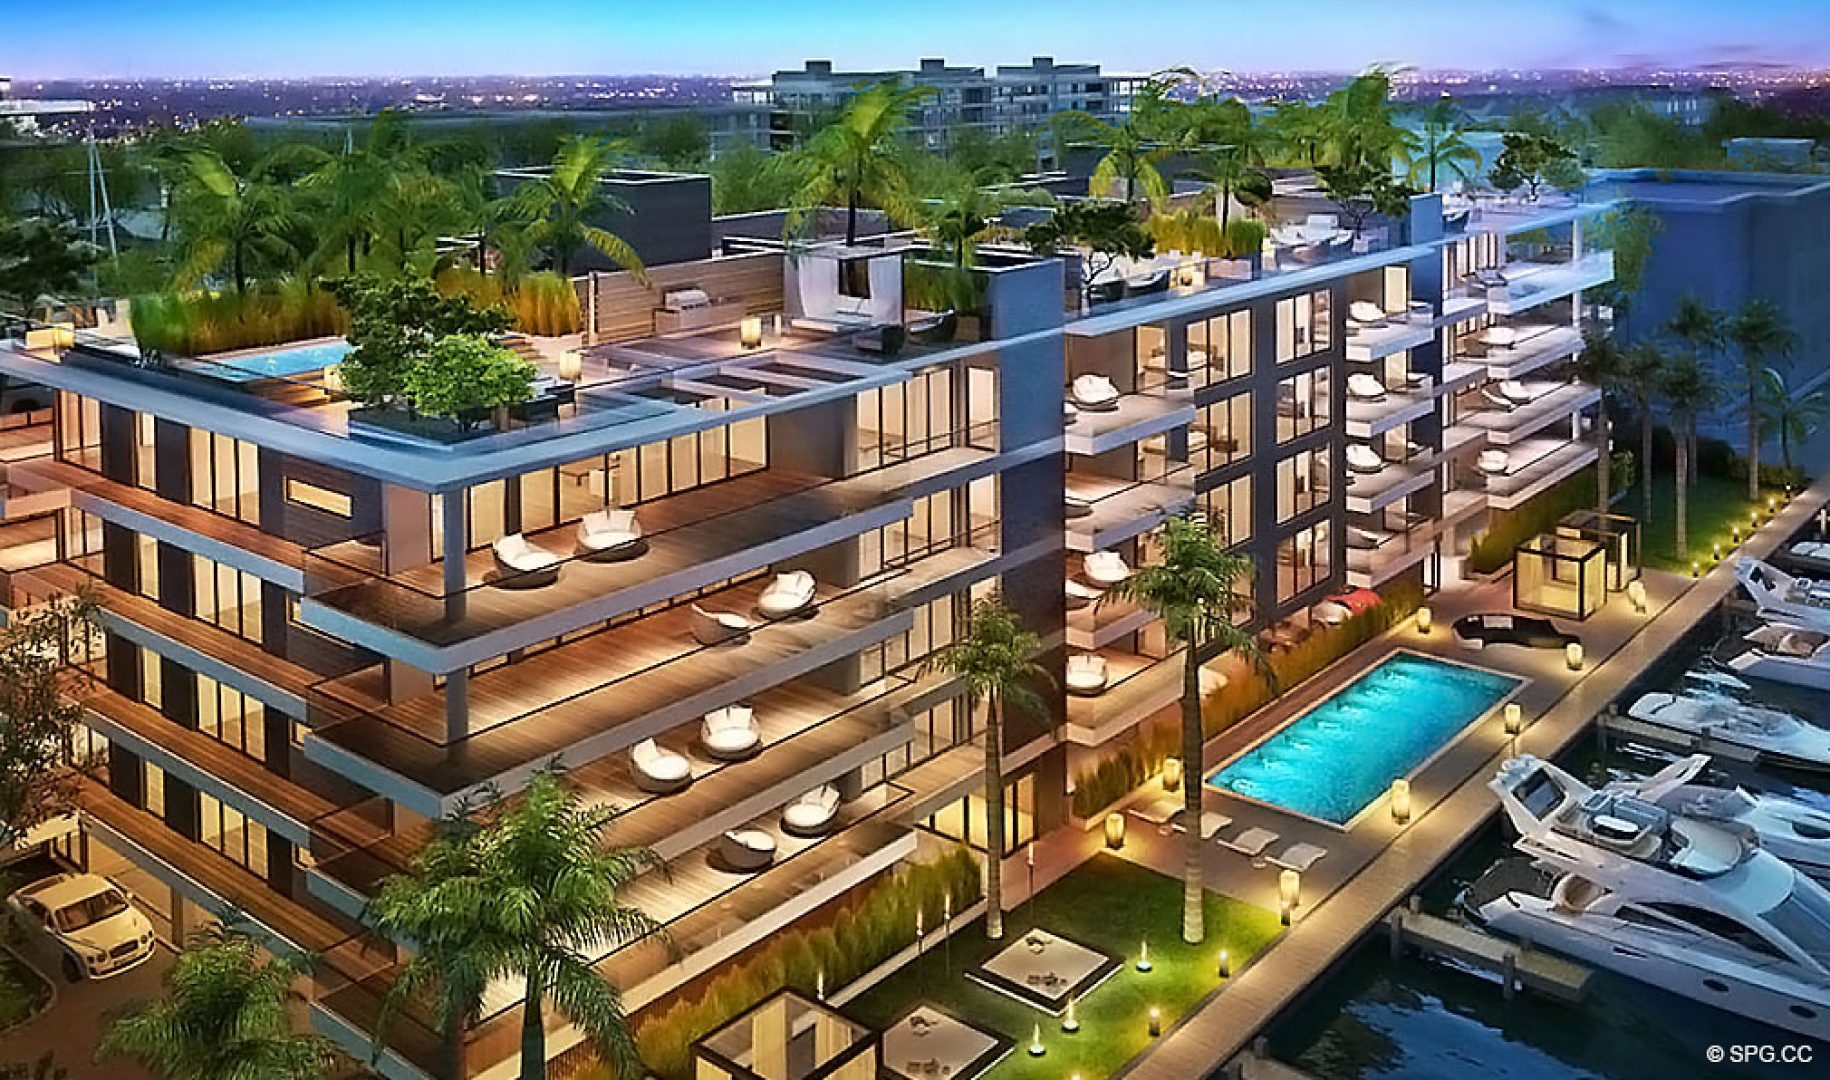 Expansive Private Terraces at AquaLuna Las Olas, Luxury Waterfront Condos in Fort Lauderdale, Florida 33301